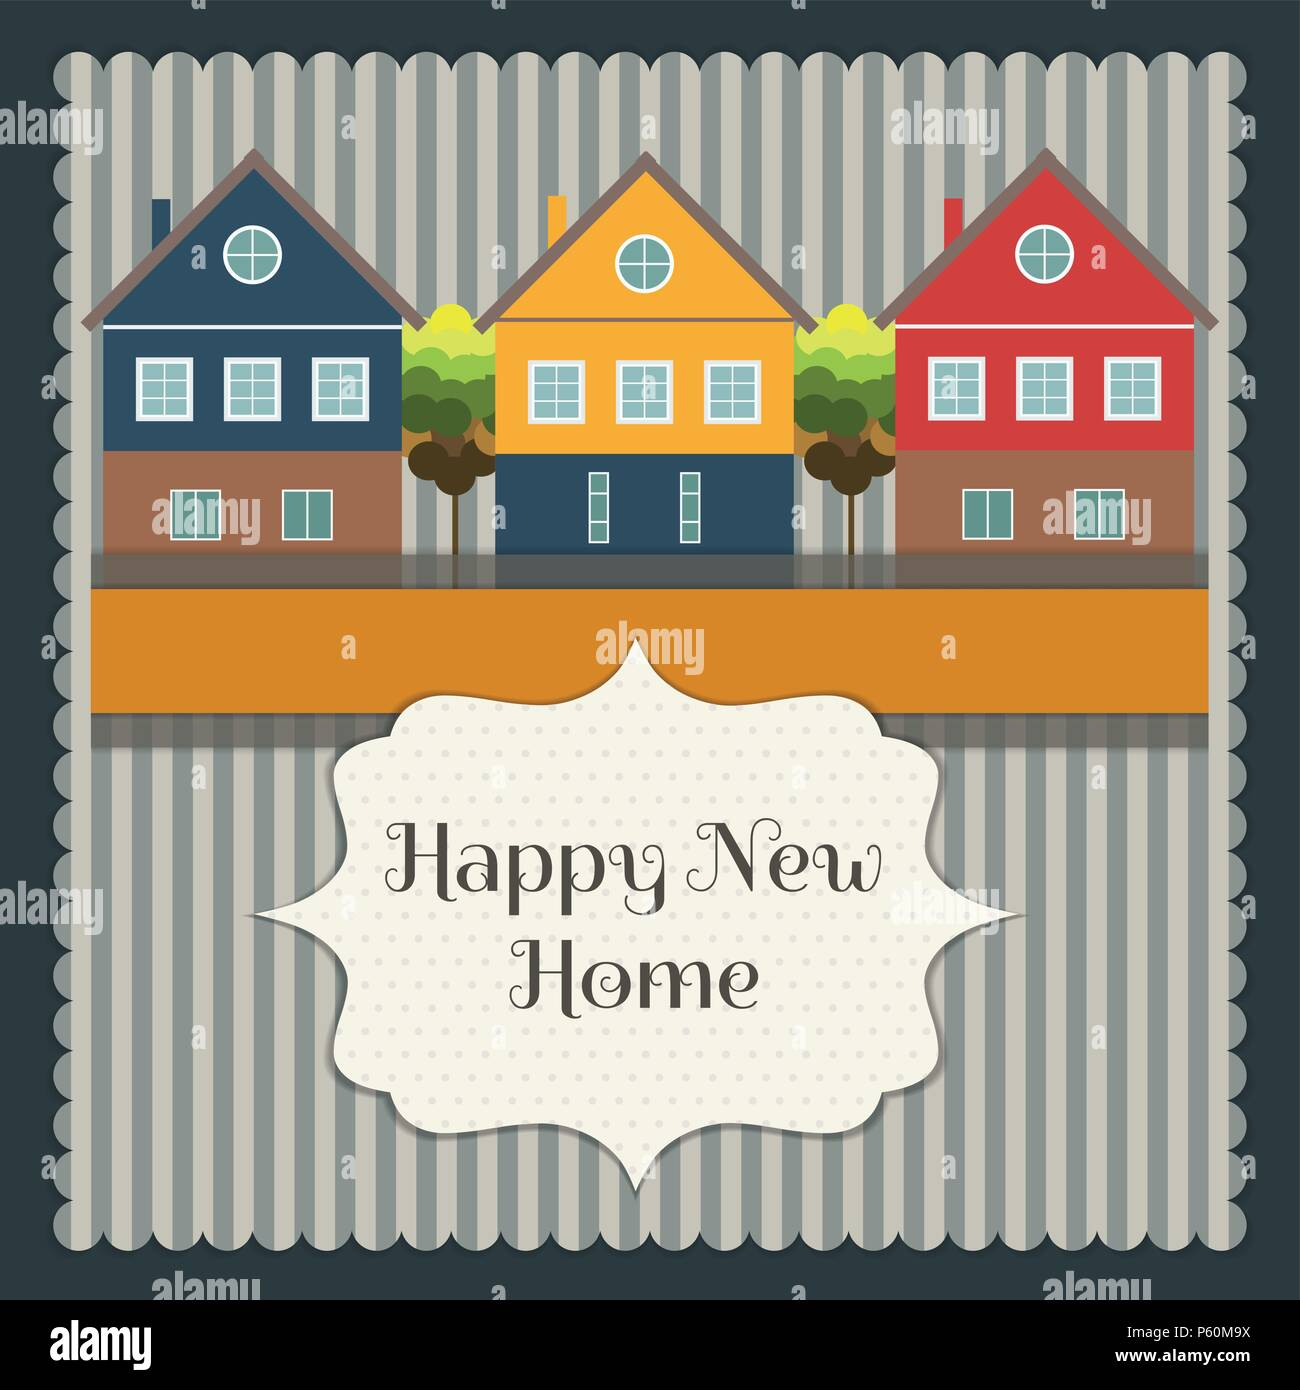 Abstract Real Estate Card, Home Sweet Home Message - Stock Vector